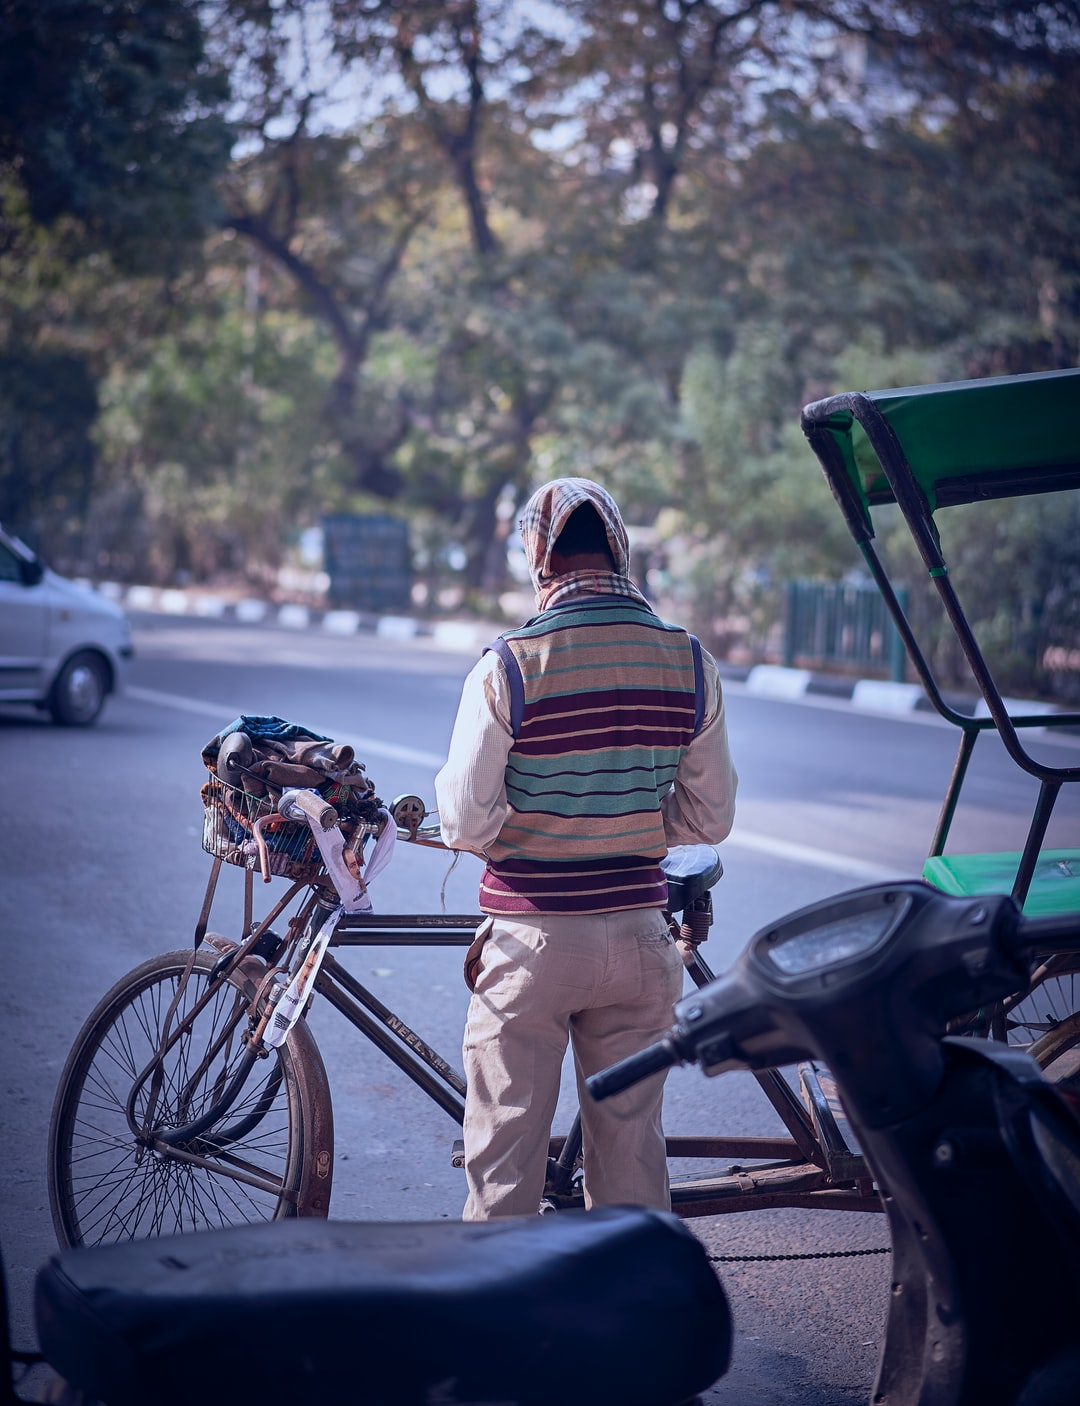 A Rickshaw driver counting his collected fare